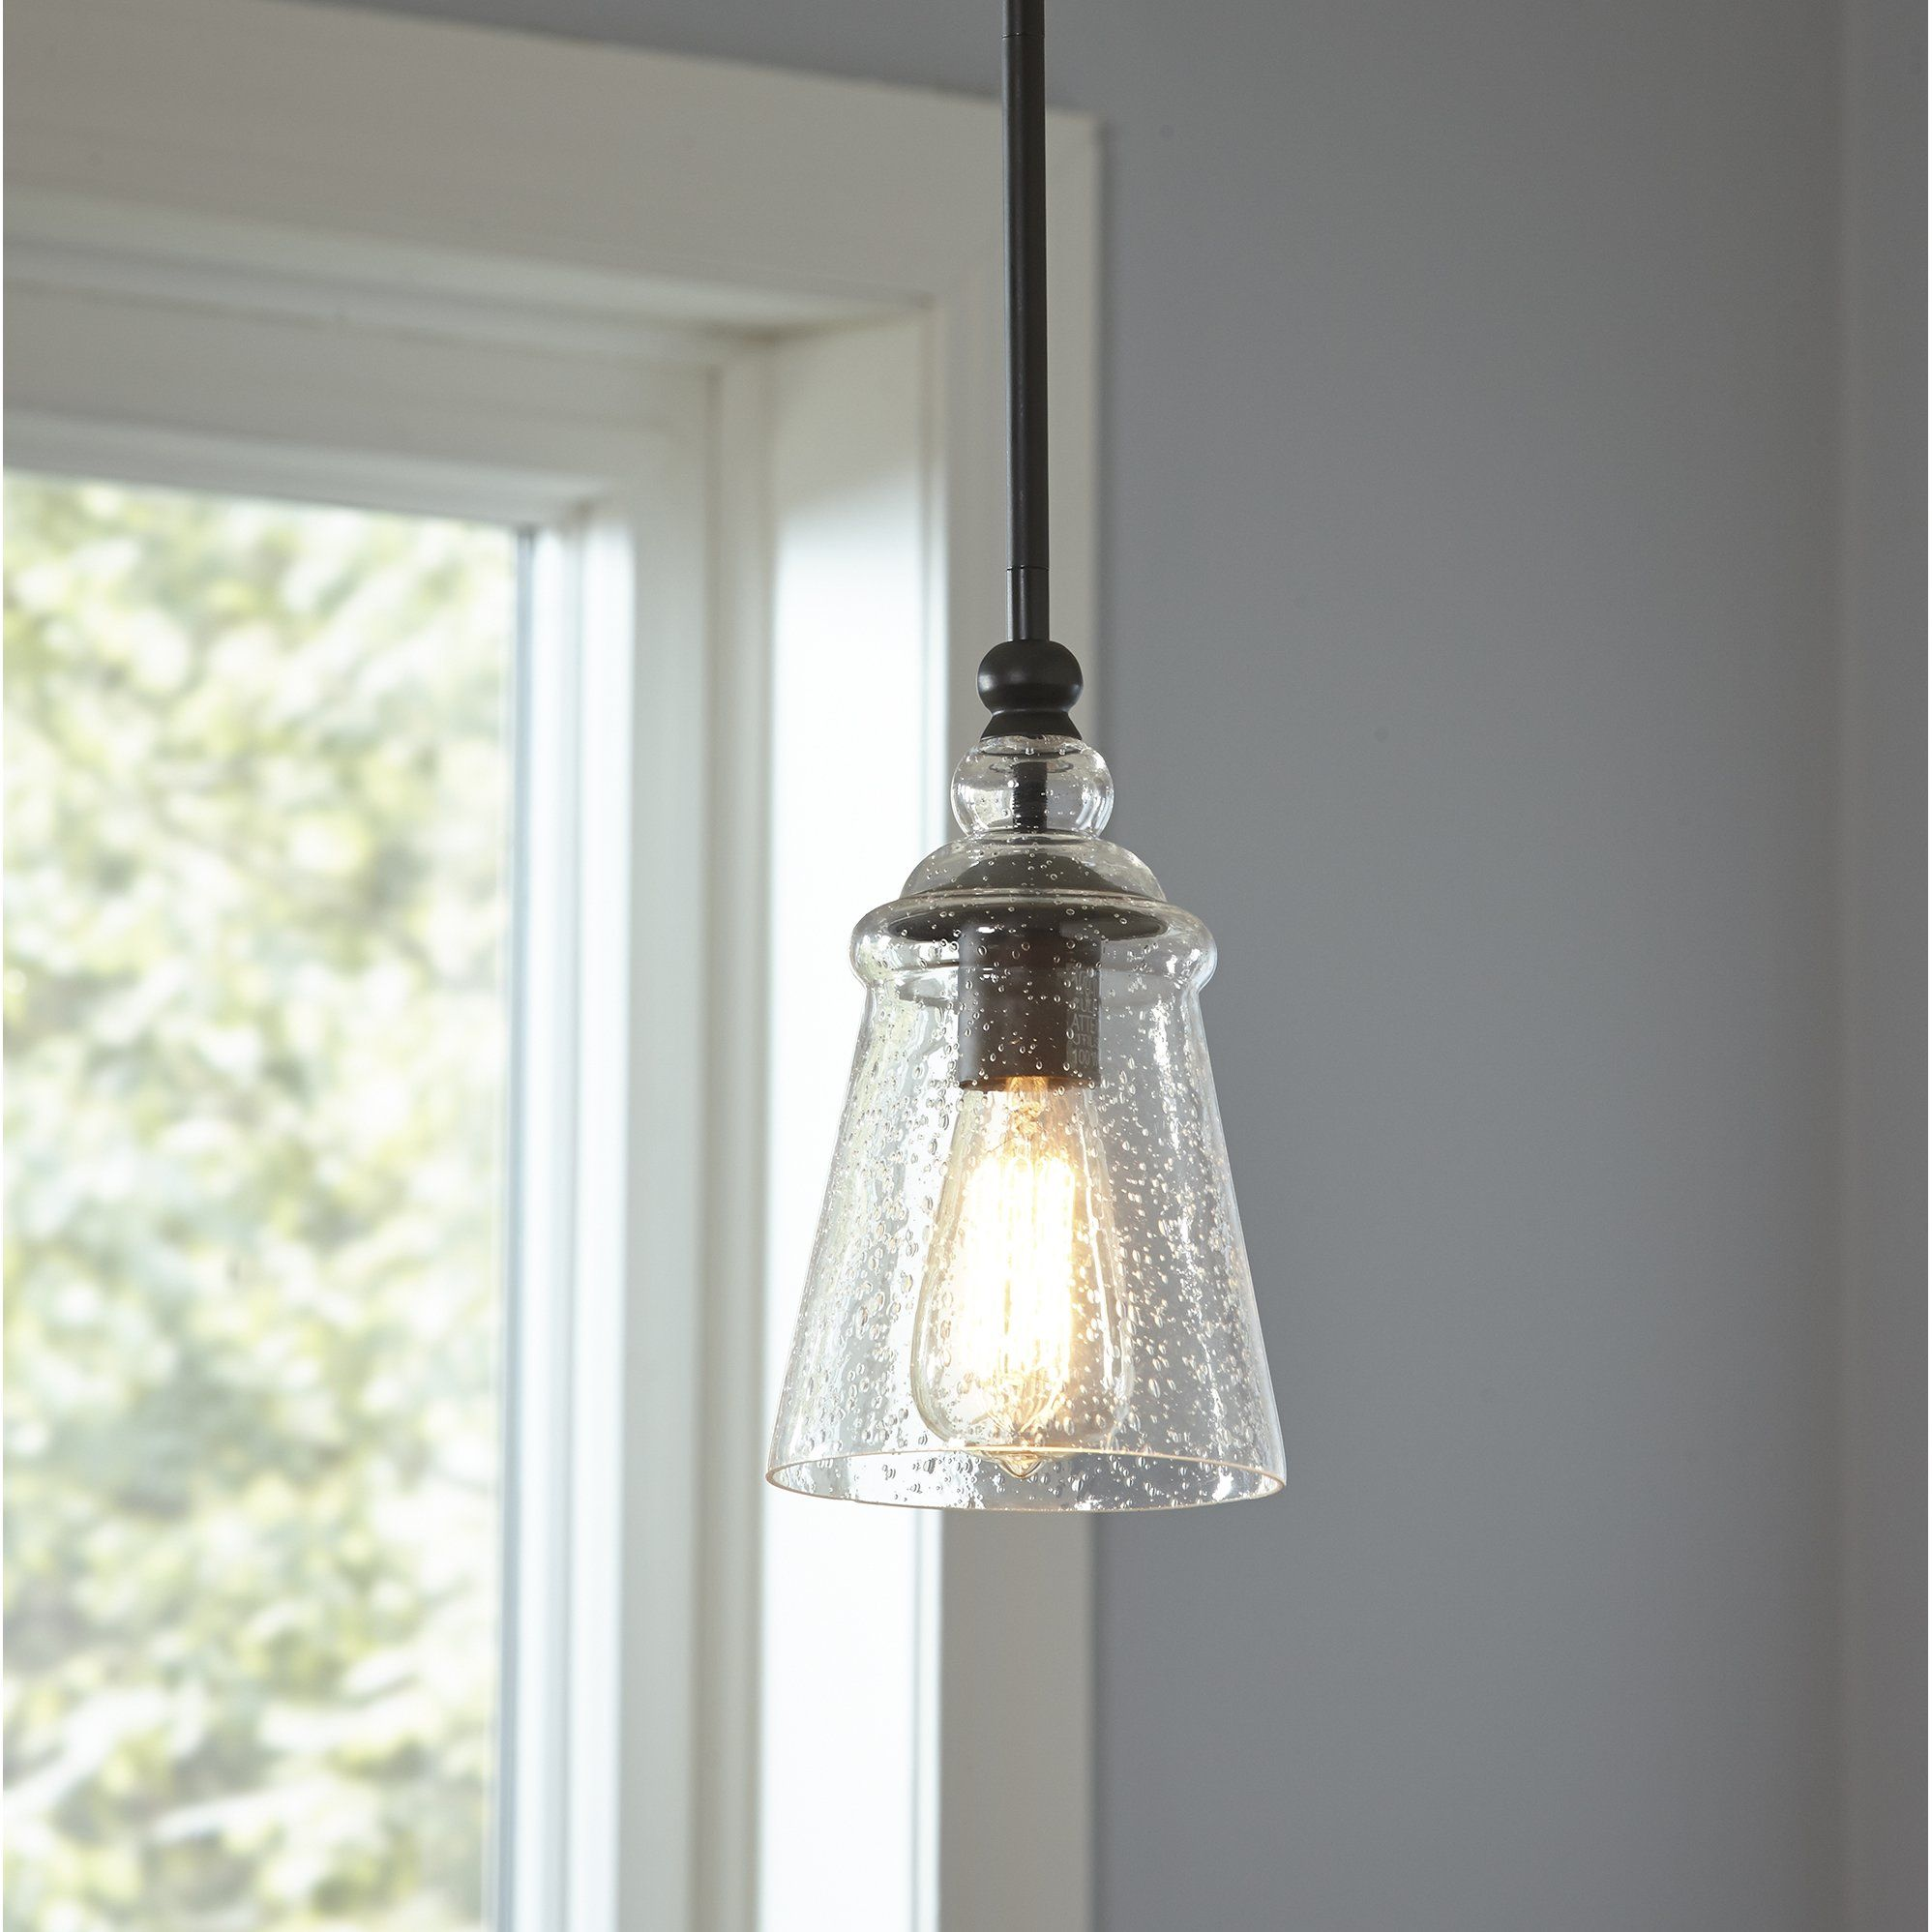 Sargent mini pendant kitchen remodel pinterest mini pendant